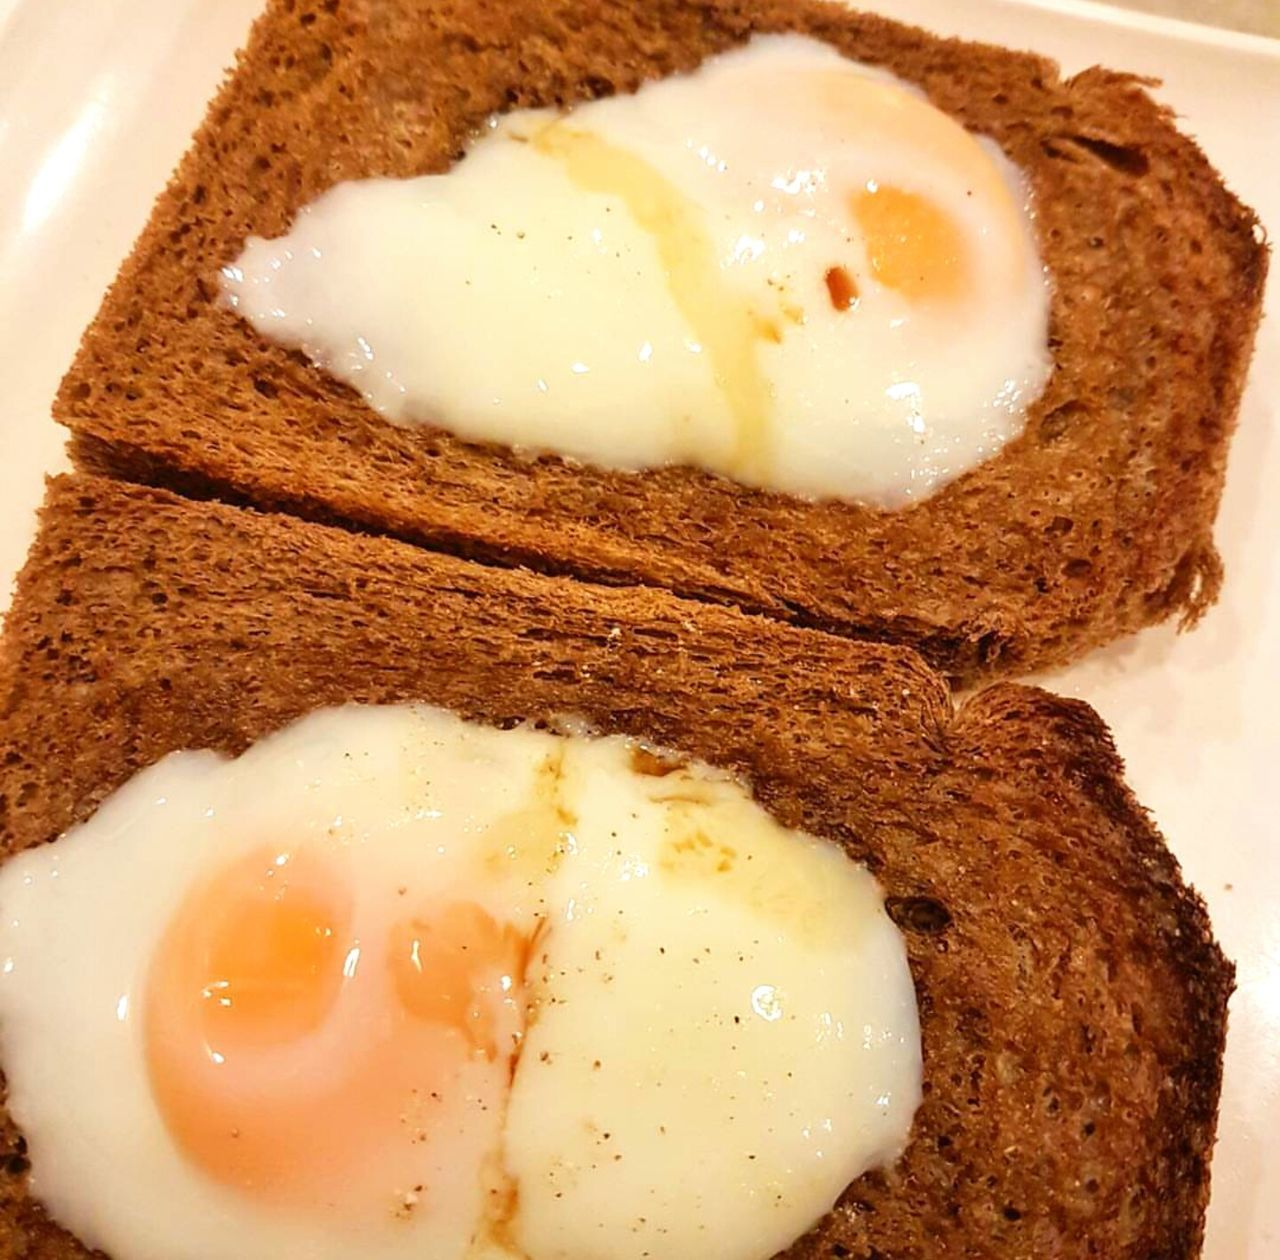 Morning breakfast Food Breakfast Bread Eggontoast Toastbread Healthy Eating Ready-to-eat Foodphotography Foodforthought EyeEm Best Shots Foodie Mobilephotography Foodspotting Delicious Popular Photos Foodlover Yummy Foodstagram Foodporn Healthymeal Eating Eating Healthy